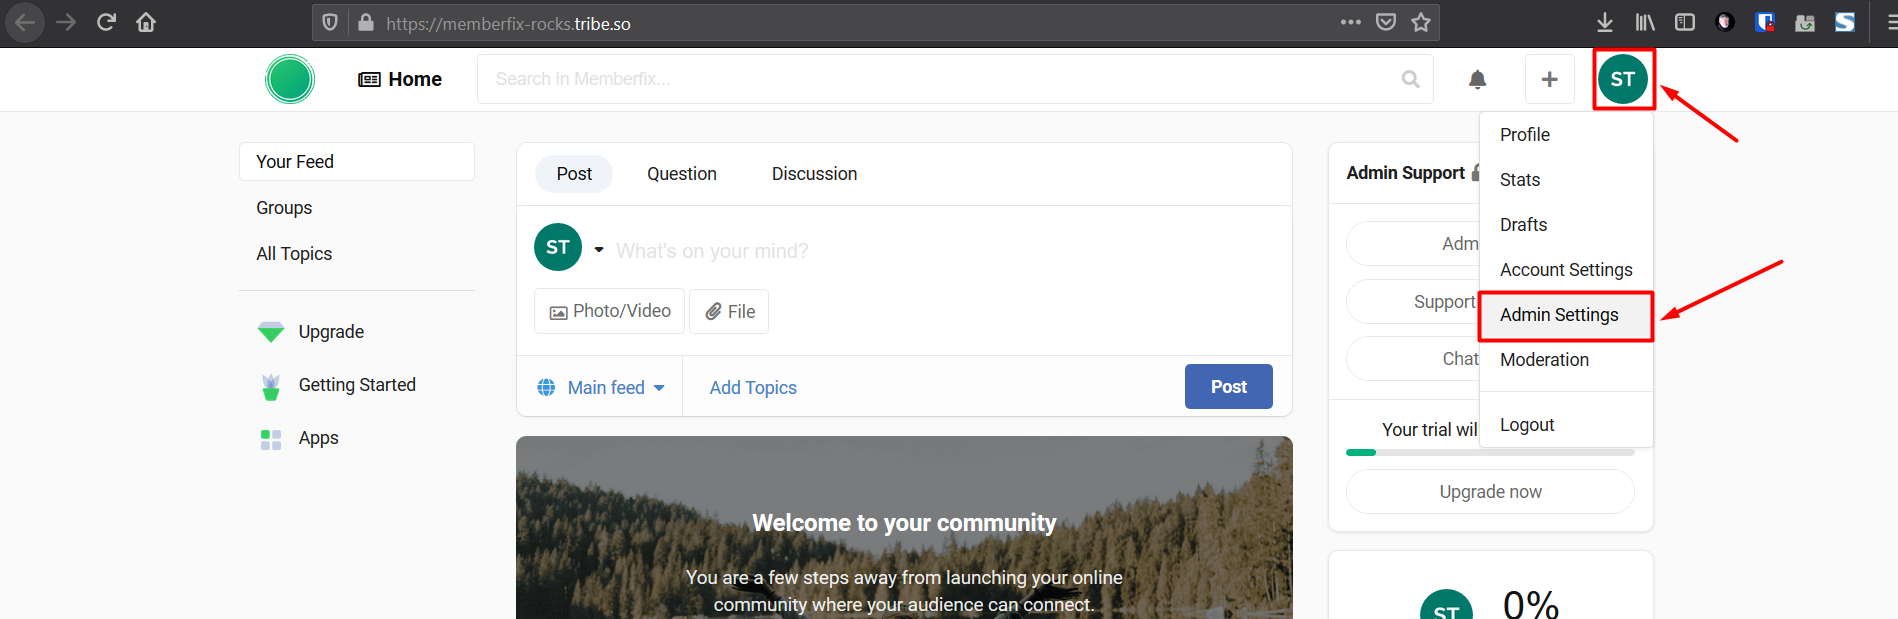 tribe memberfix 1.1 - How to migrate from Invision Power Board to Tribe.so